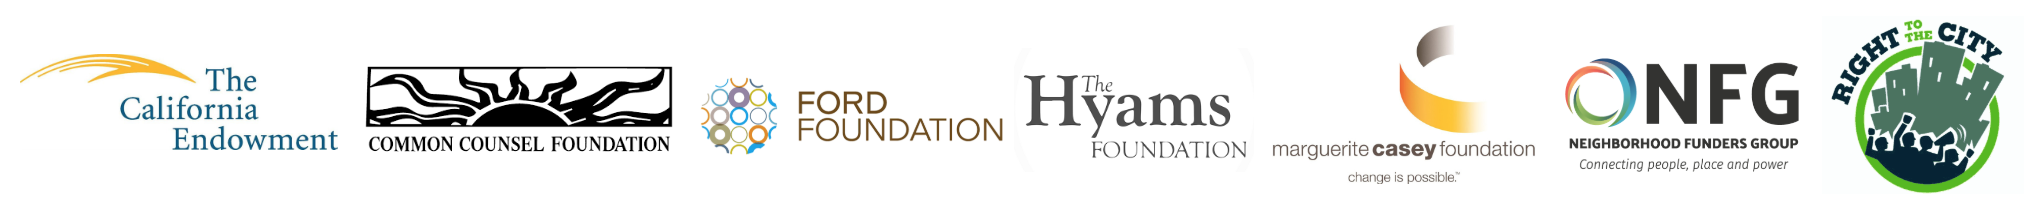 Logos of The California Endowment, Common Counsel Foundation, Ford Foundation, The Hyams Foundation, Marguerite Case Foundation, Neighborhood Funders Group, and Right to the City